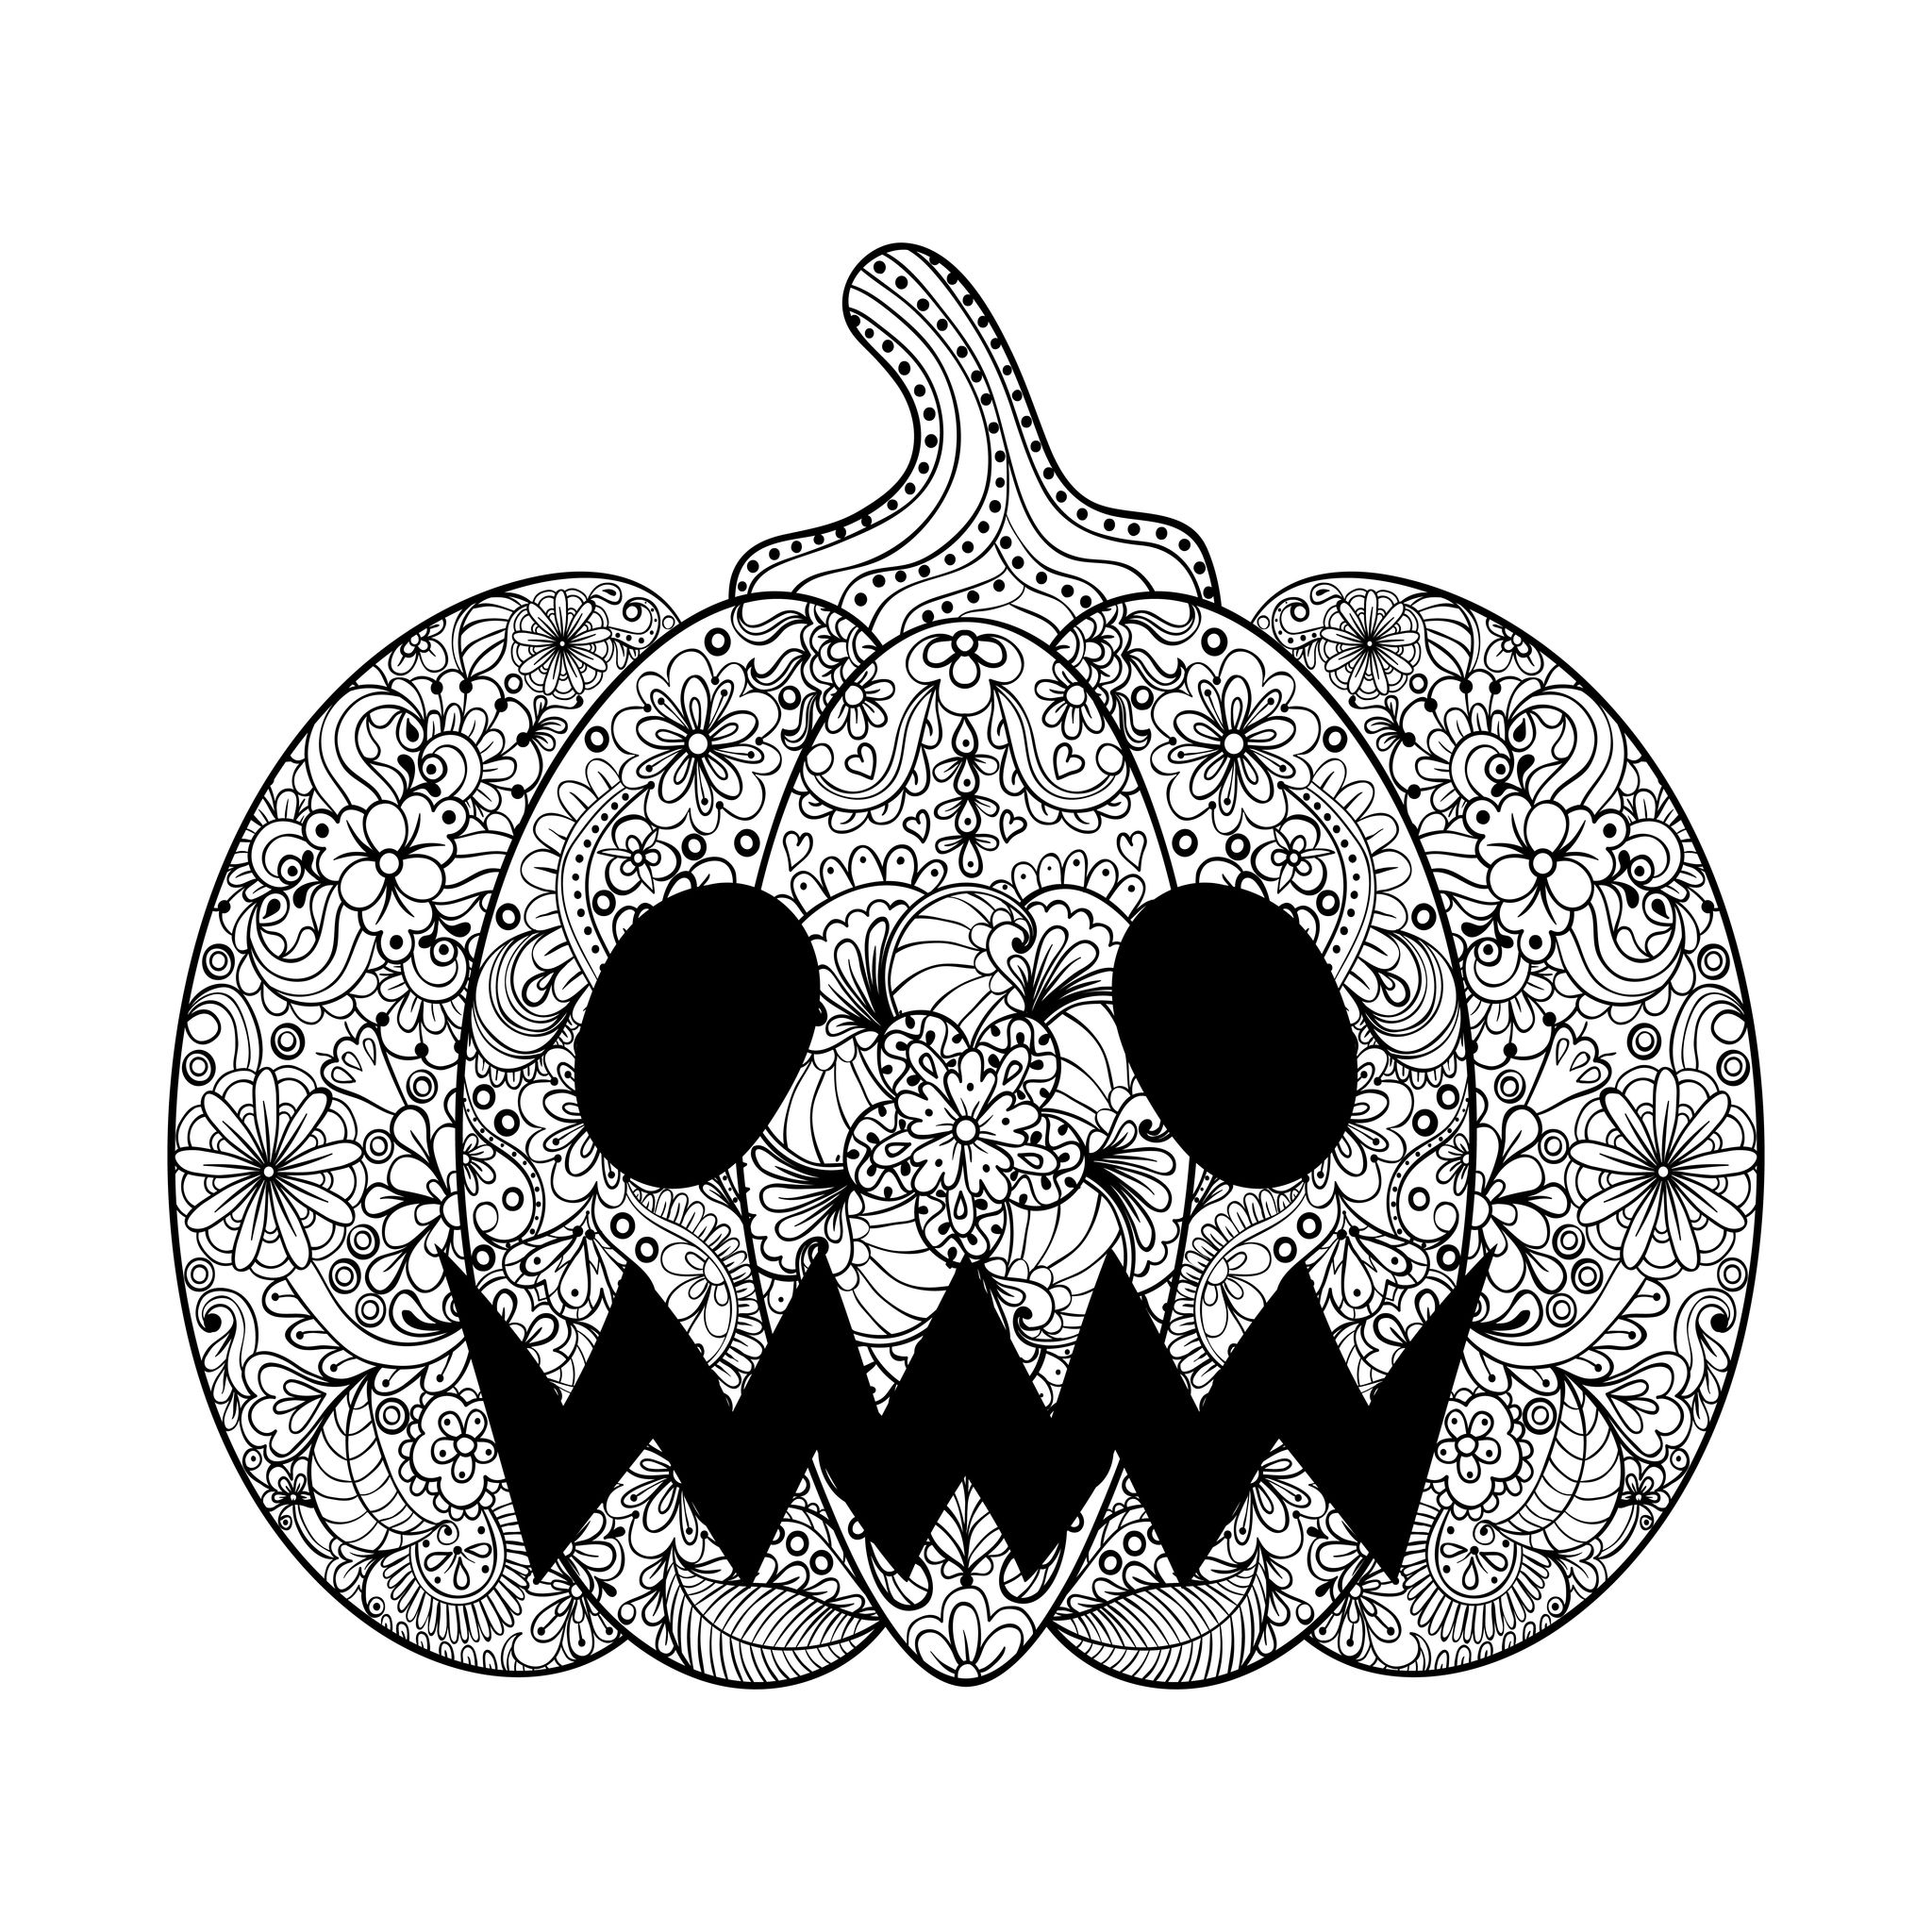 Halloween Scary Pumpkin By Ipanki Coloring Pages For